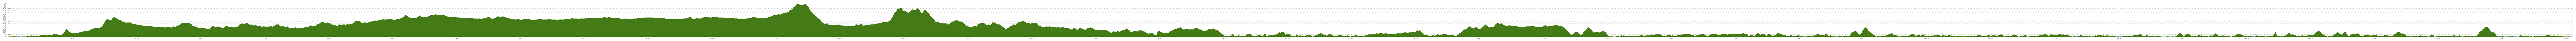 Elevation profile Cycle Tour Northern Spain Tour